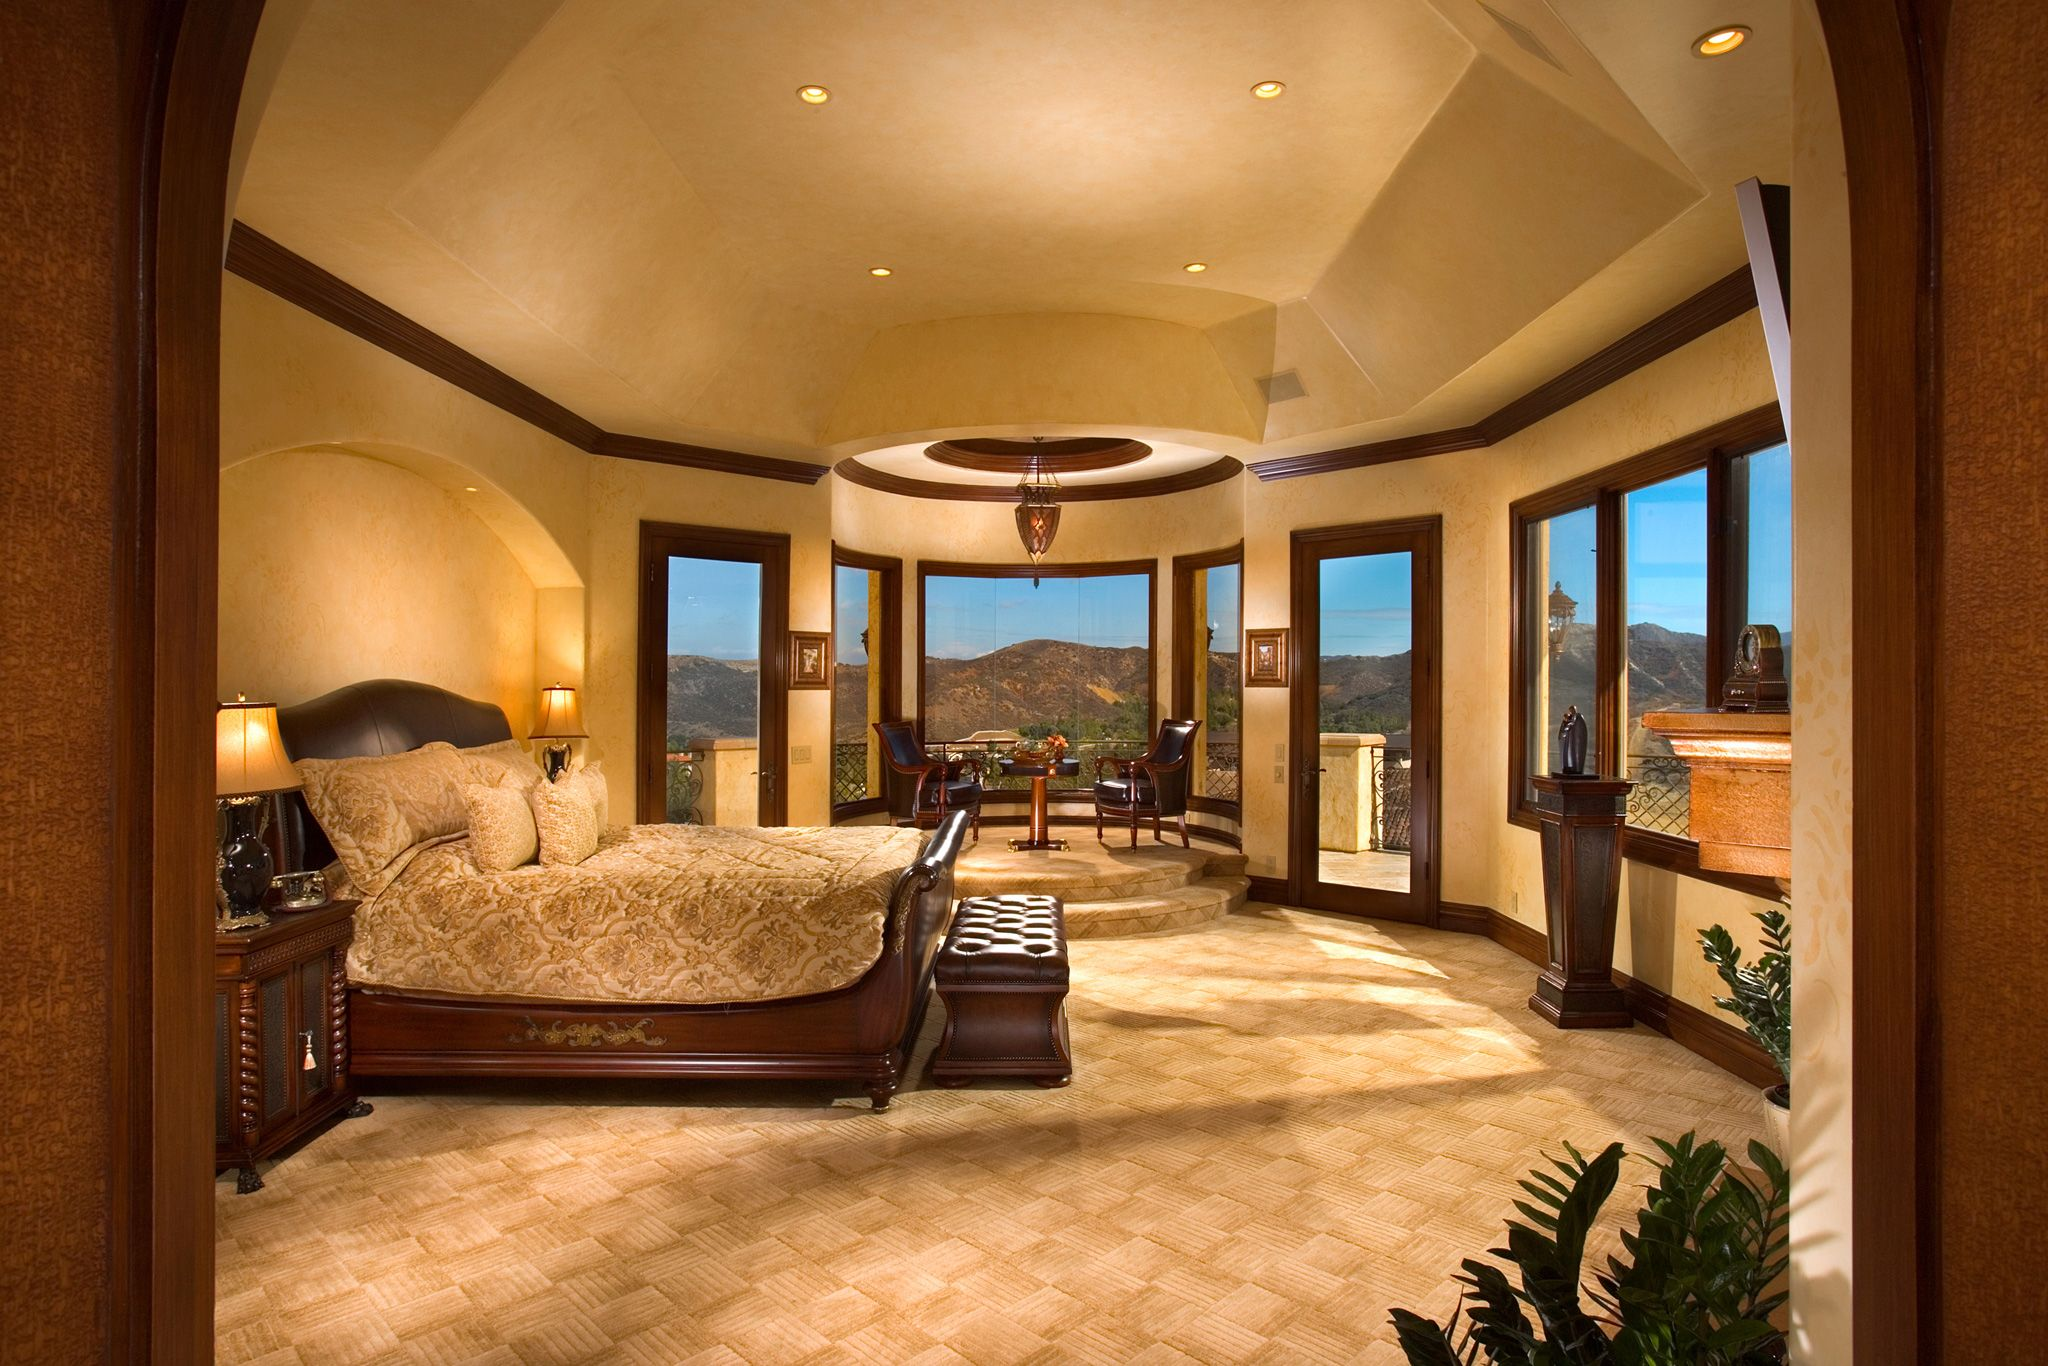 21 incredible master bedrooms design ideas luxury master for Master bedrooms